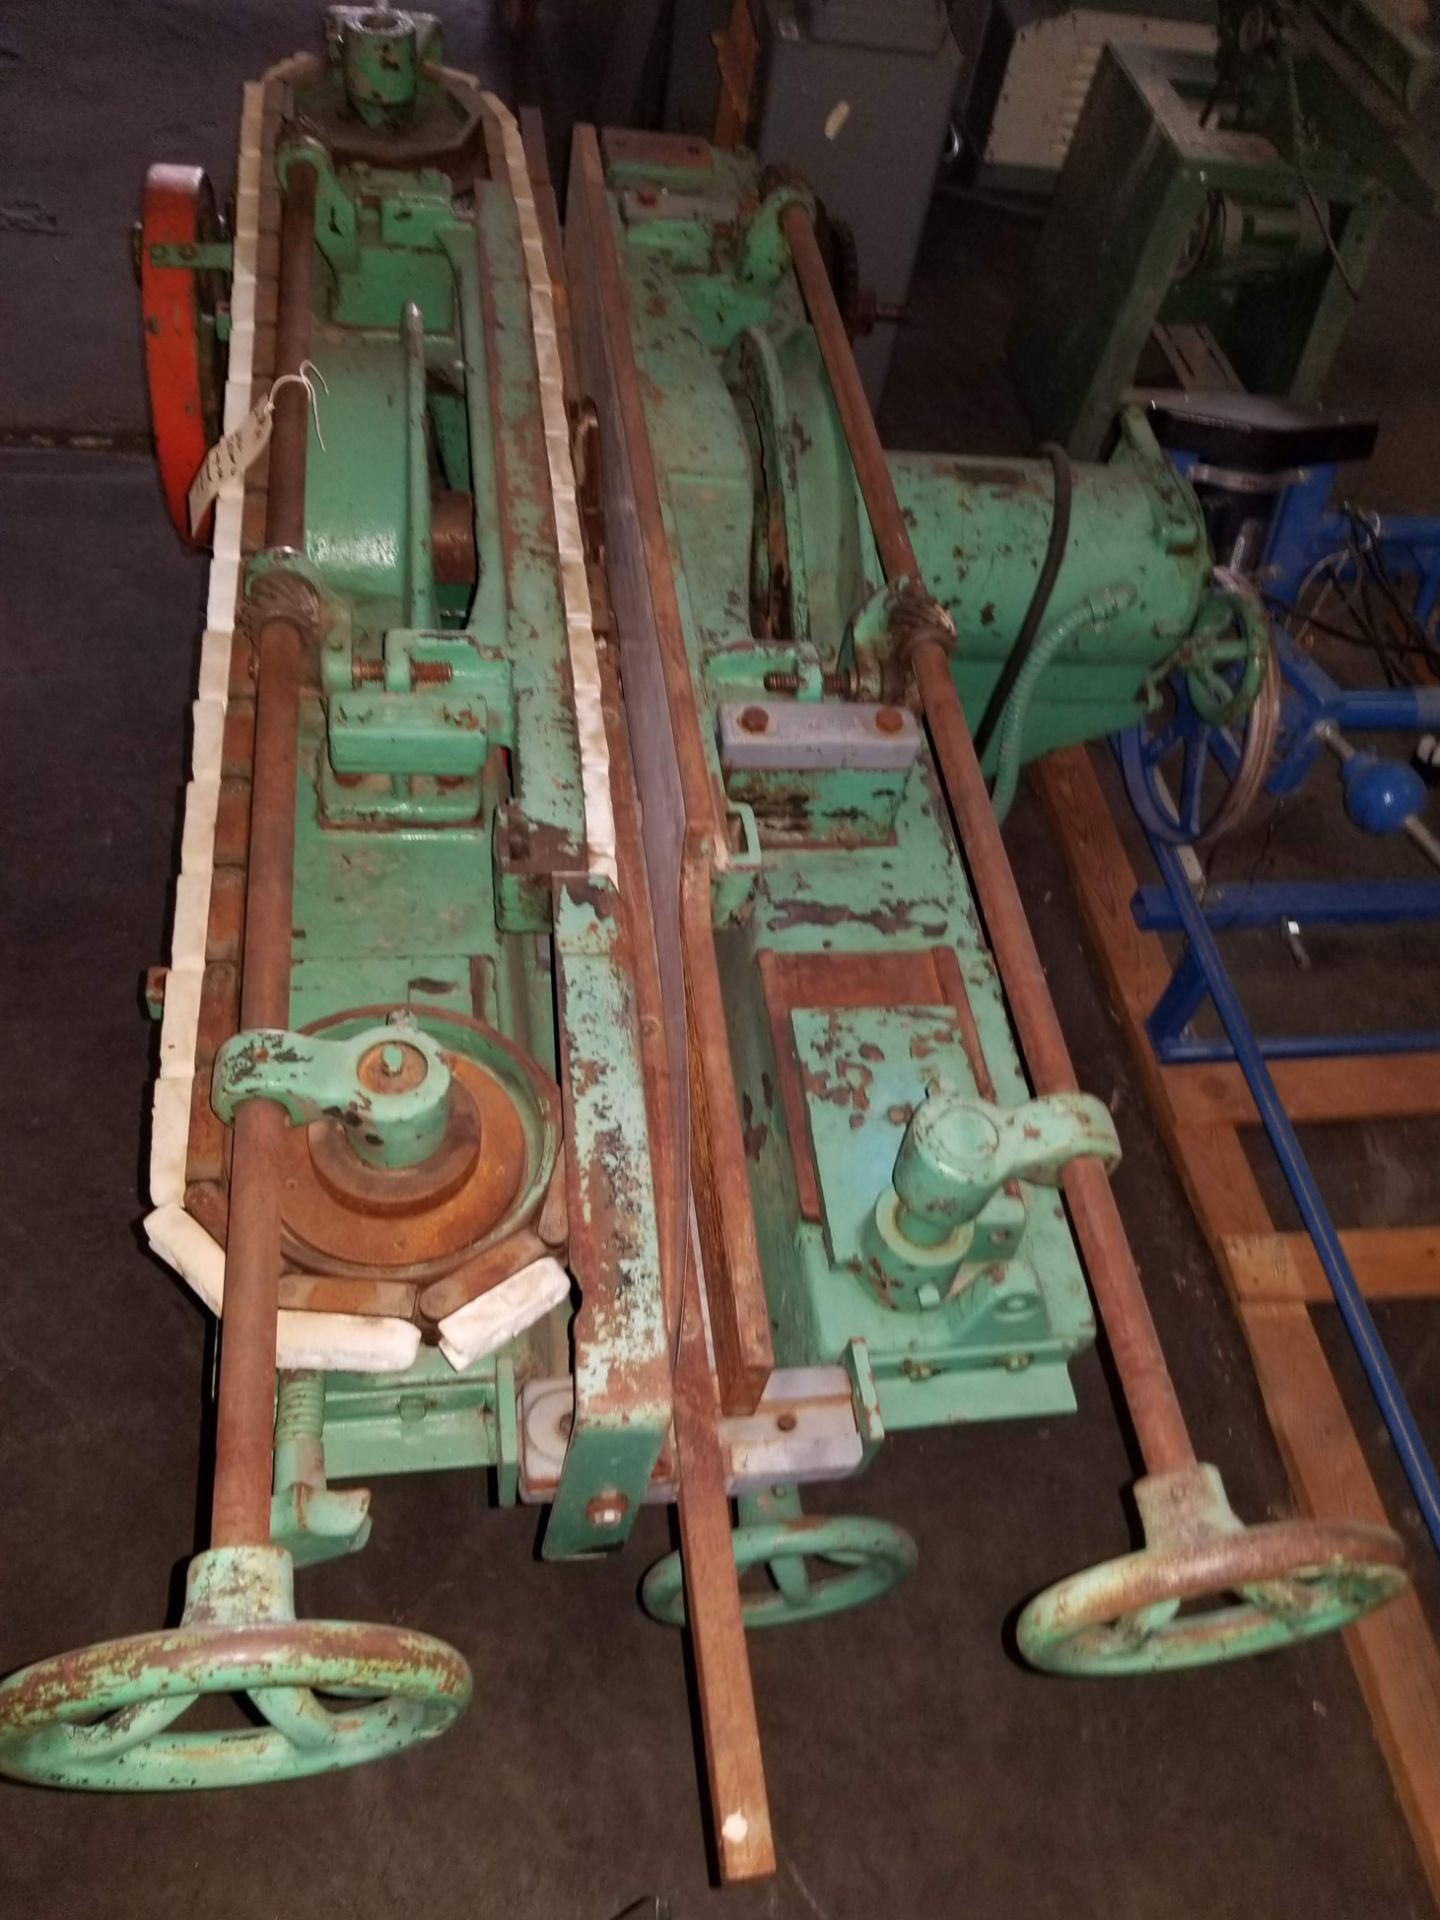 Lot 49 - Wilkin-Challoner Single End Panel Raisers #116, Machine is equipped with 5 hp main head motor and